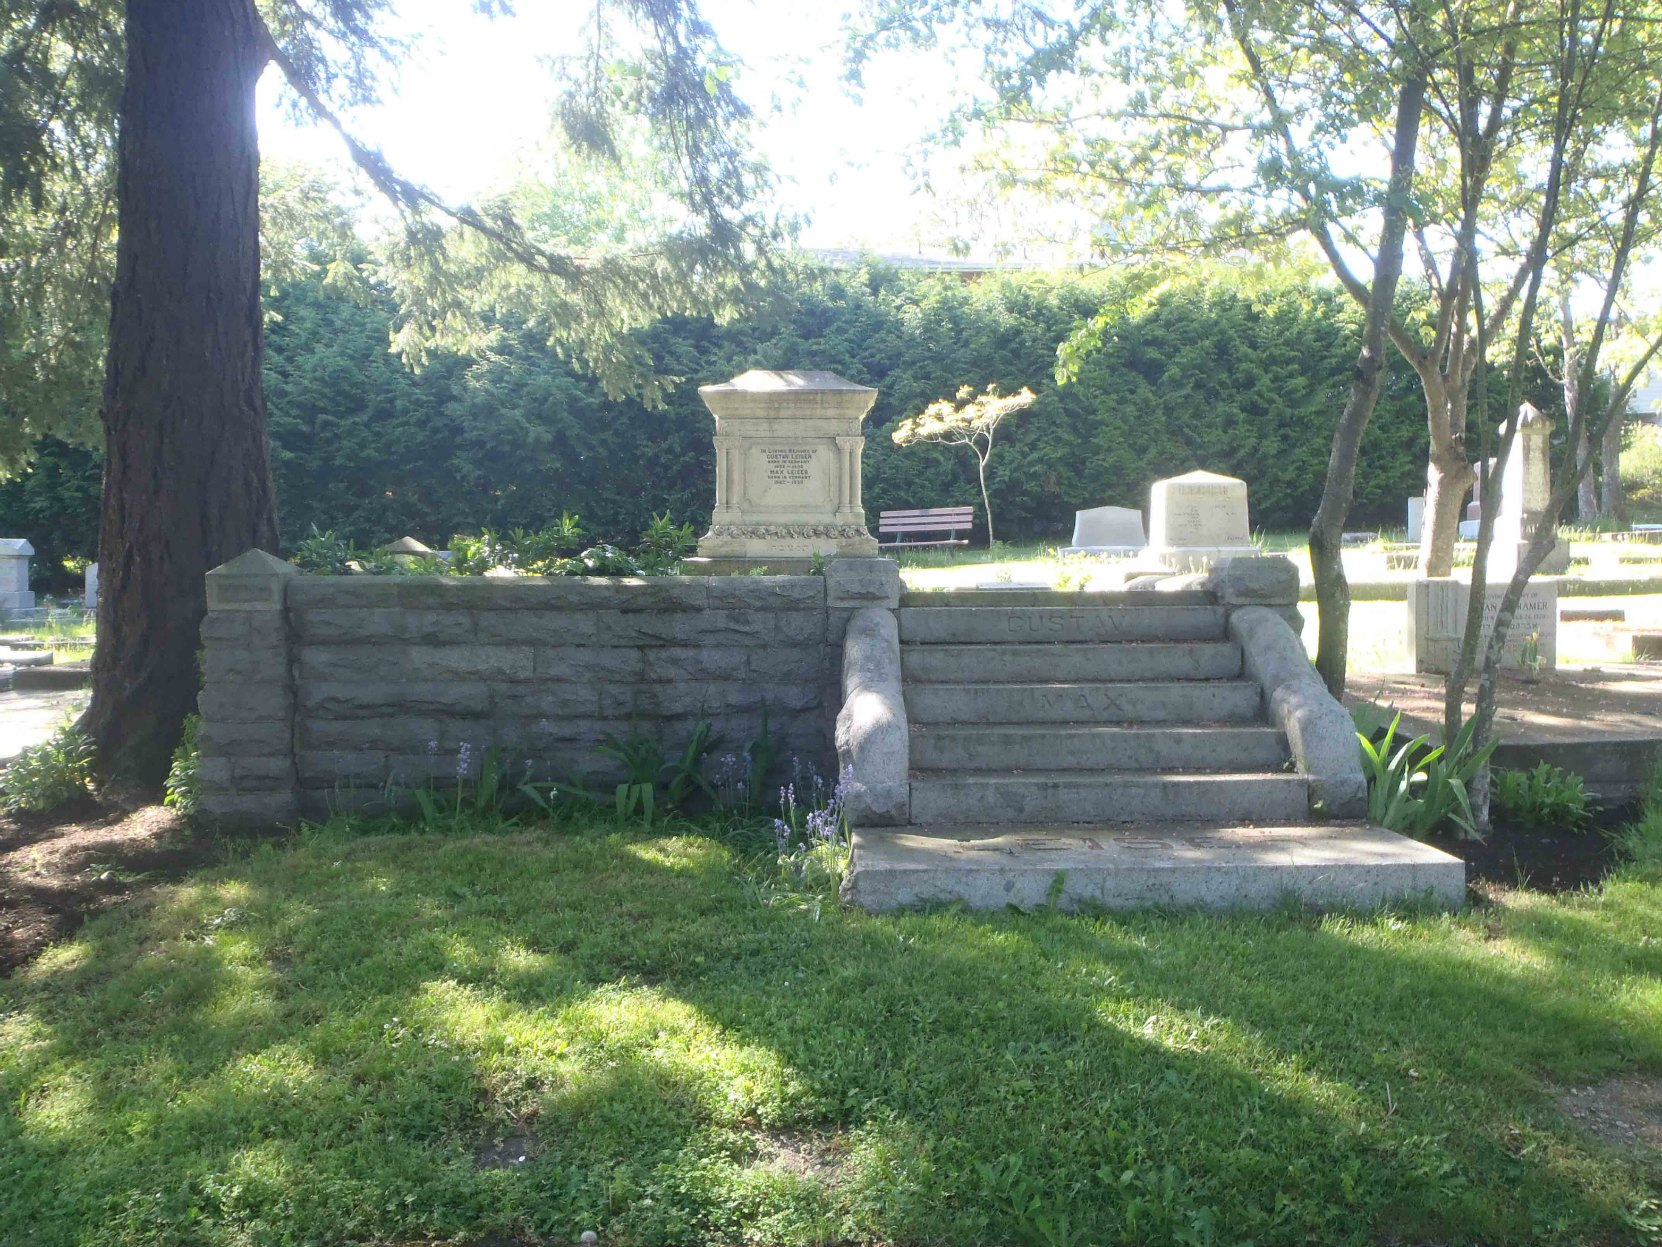 Grave of Gustav Leiser (1856-1896) and Max Leiser (1862-1935) in Victoria Jewish Cemetery, Victoria, B.C.